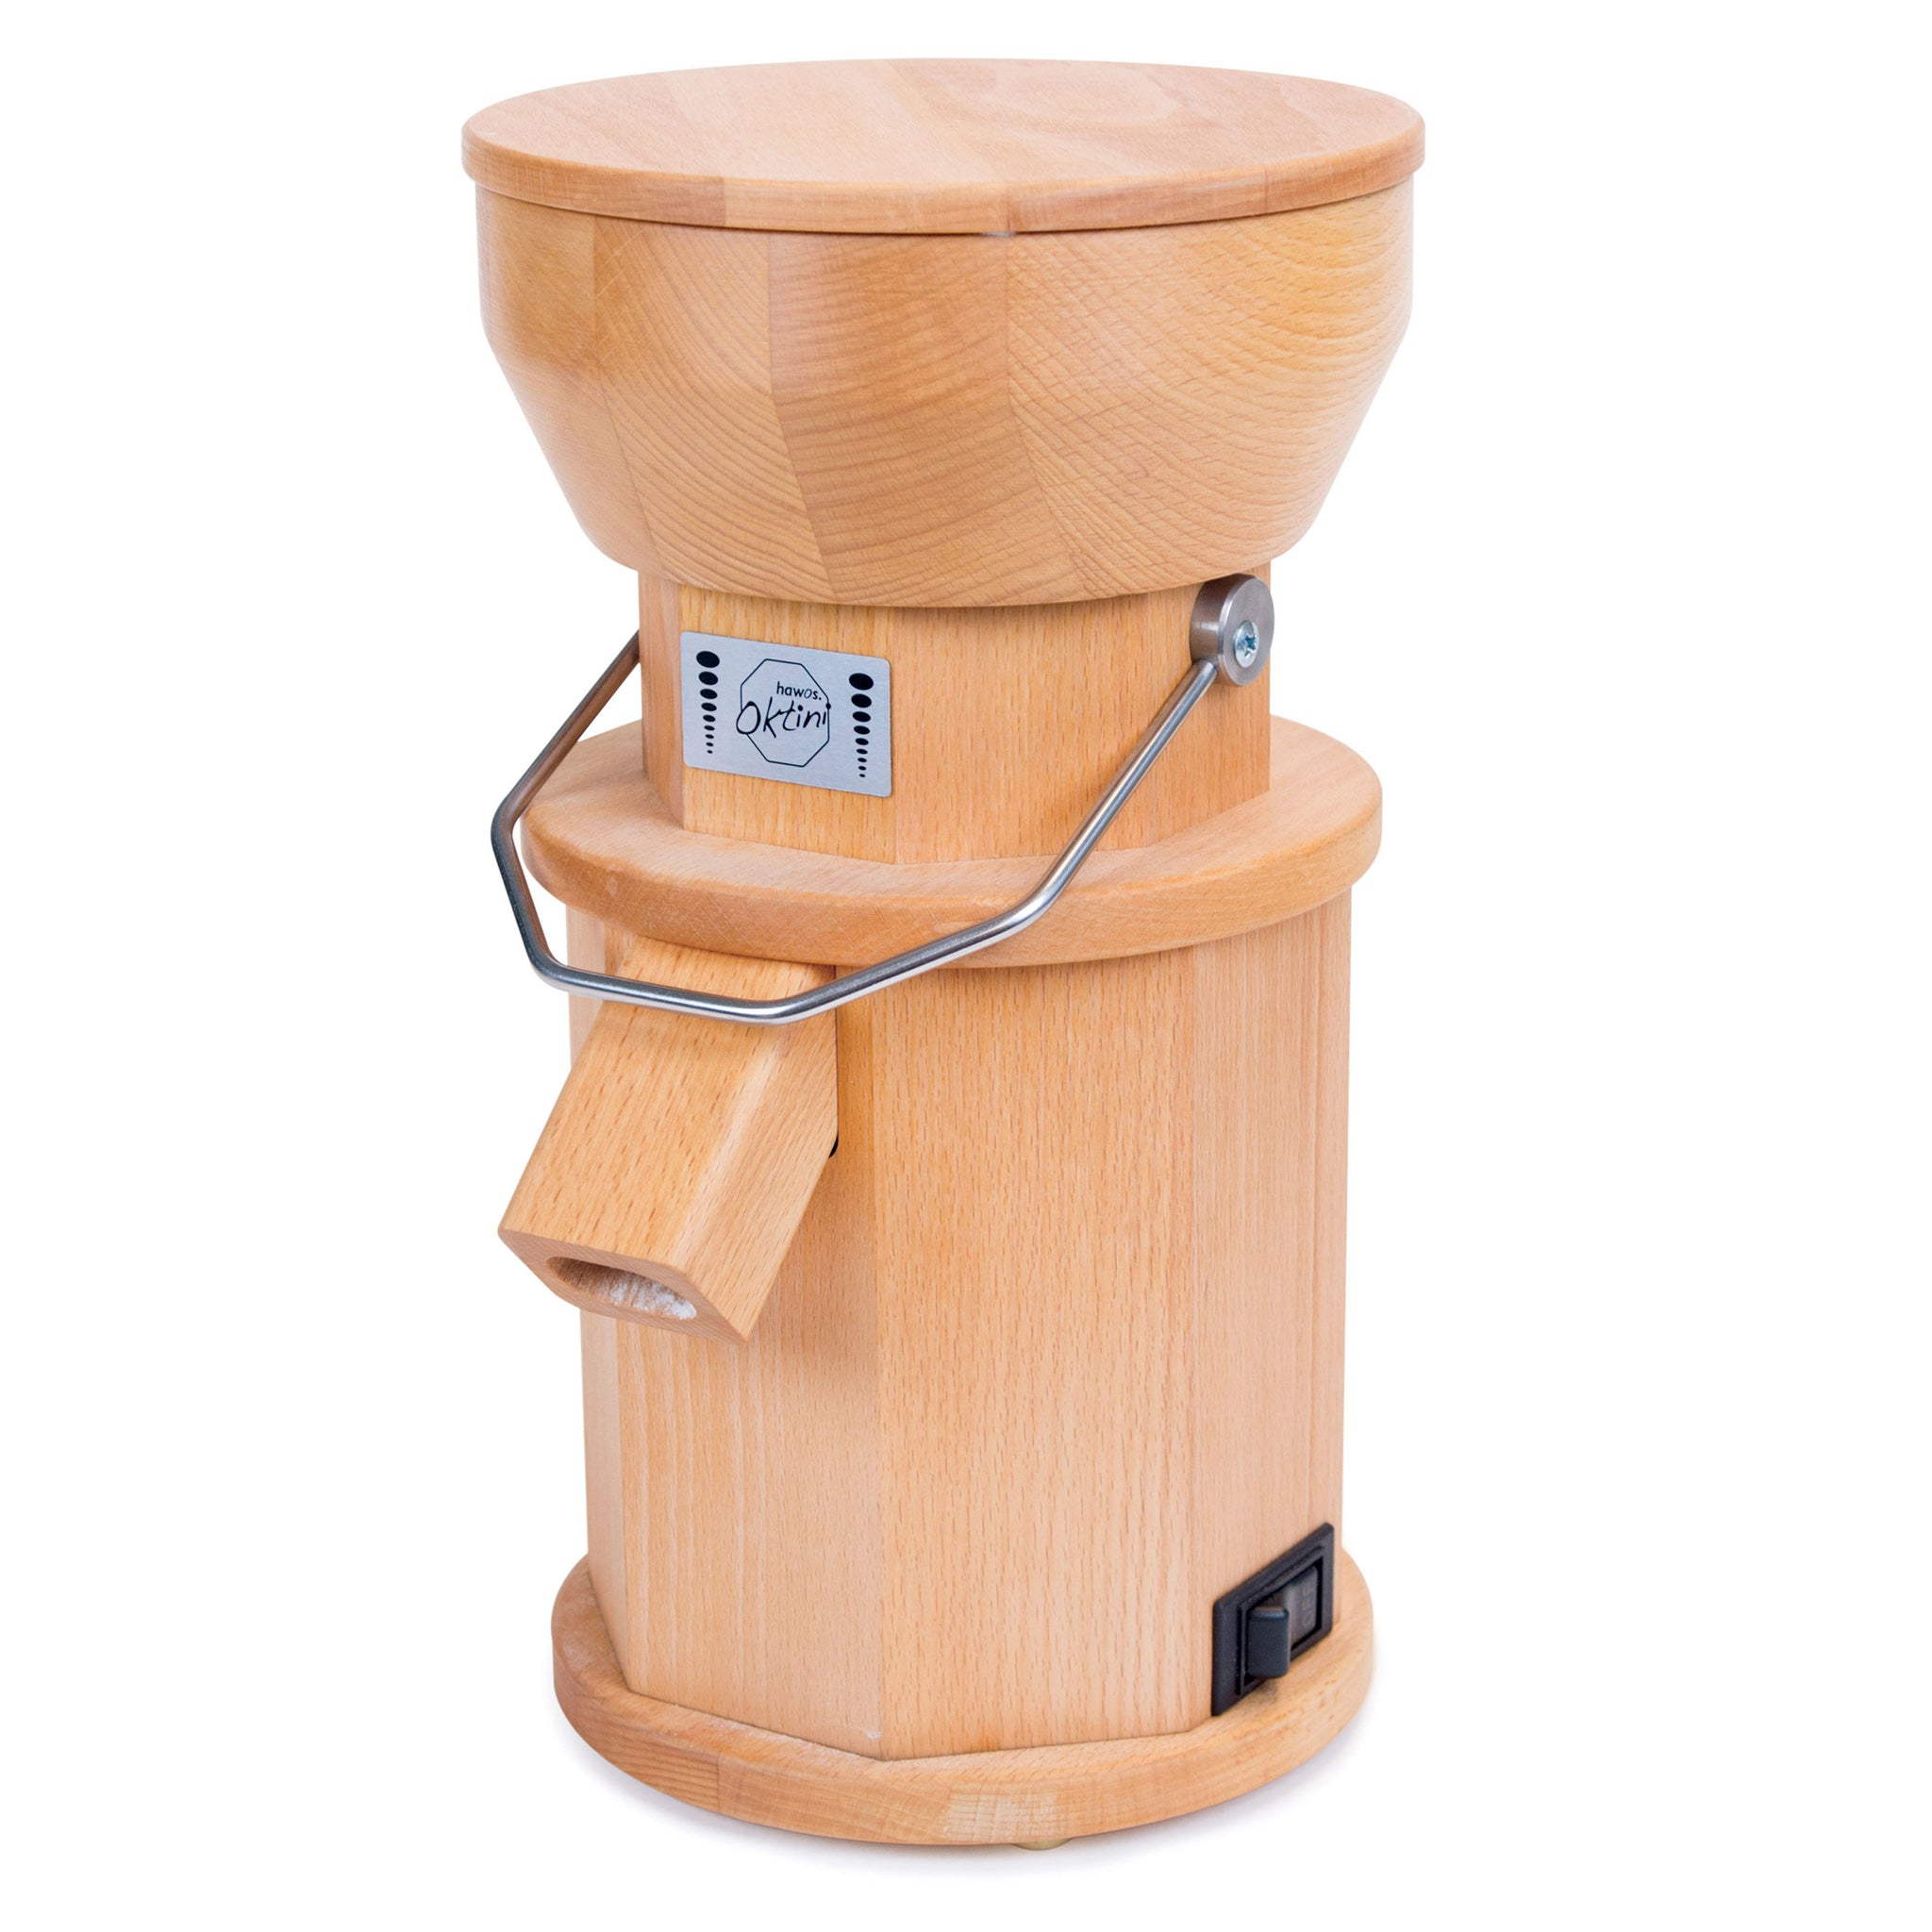 Oktini Hand-Crafted Grain Mill HM-OKTI-B - Tribest